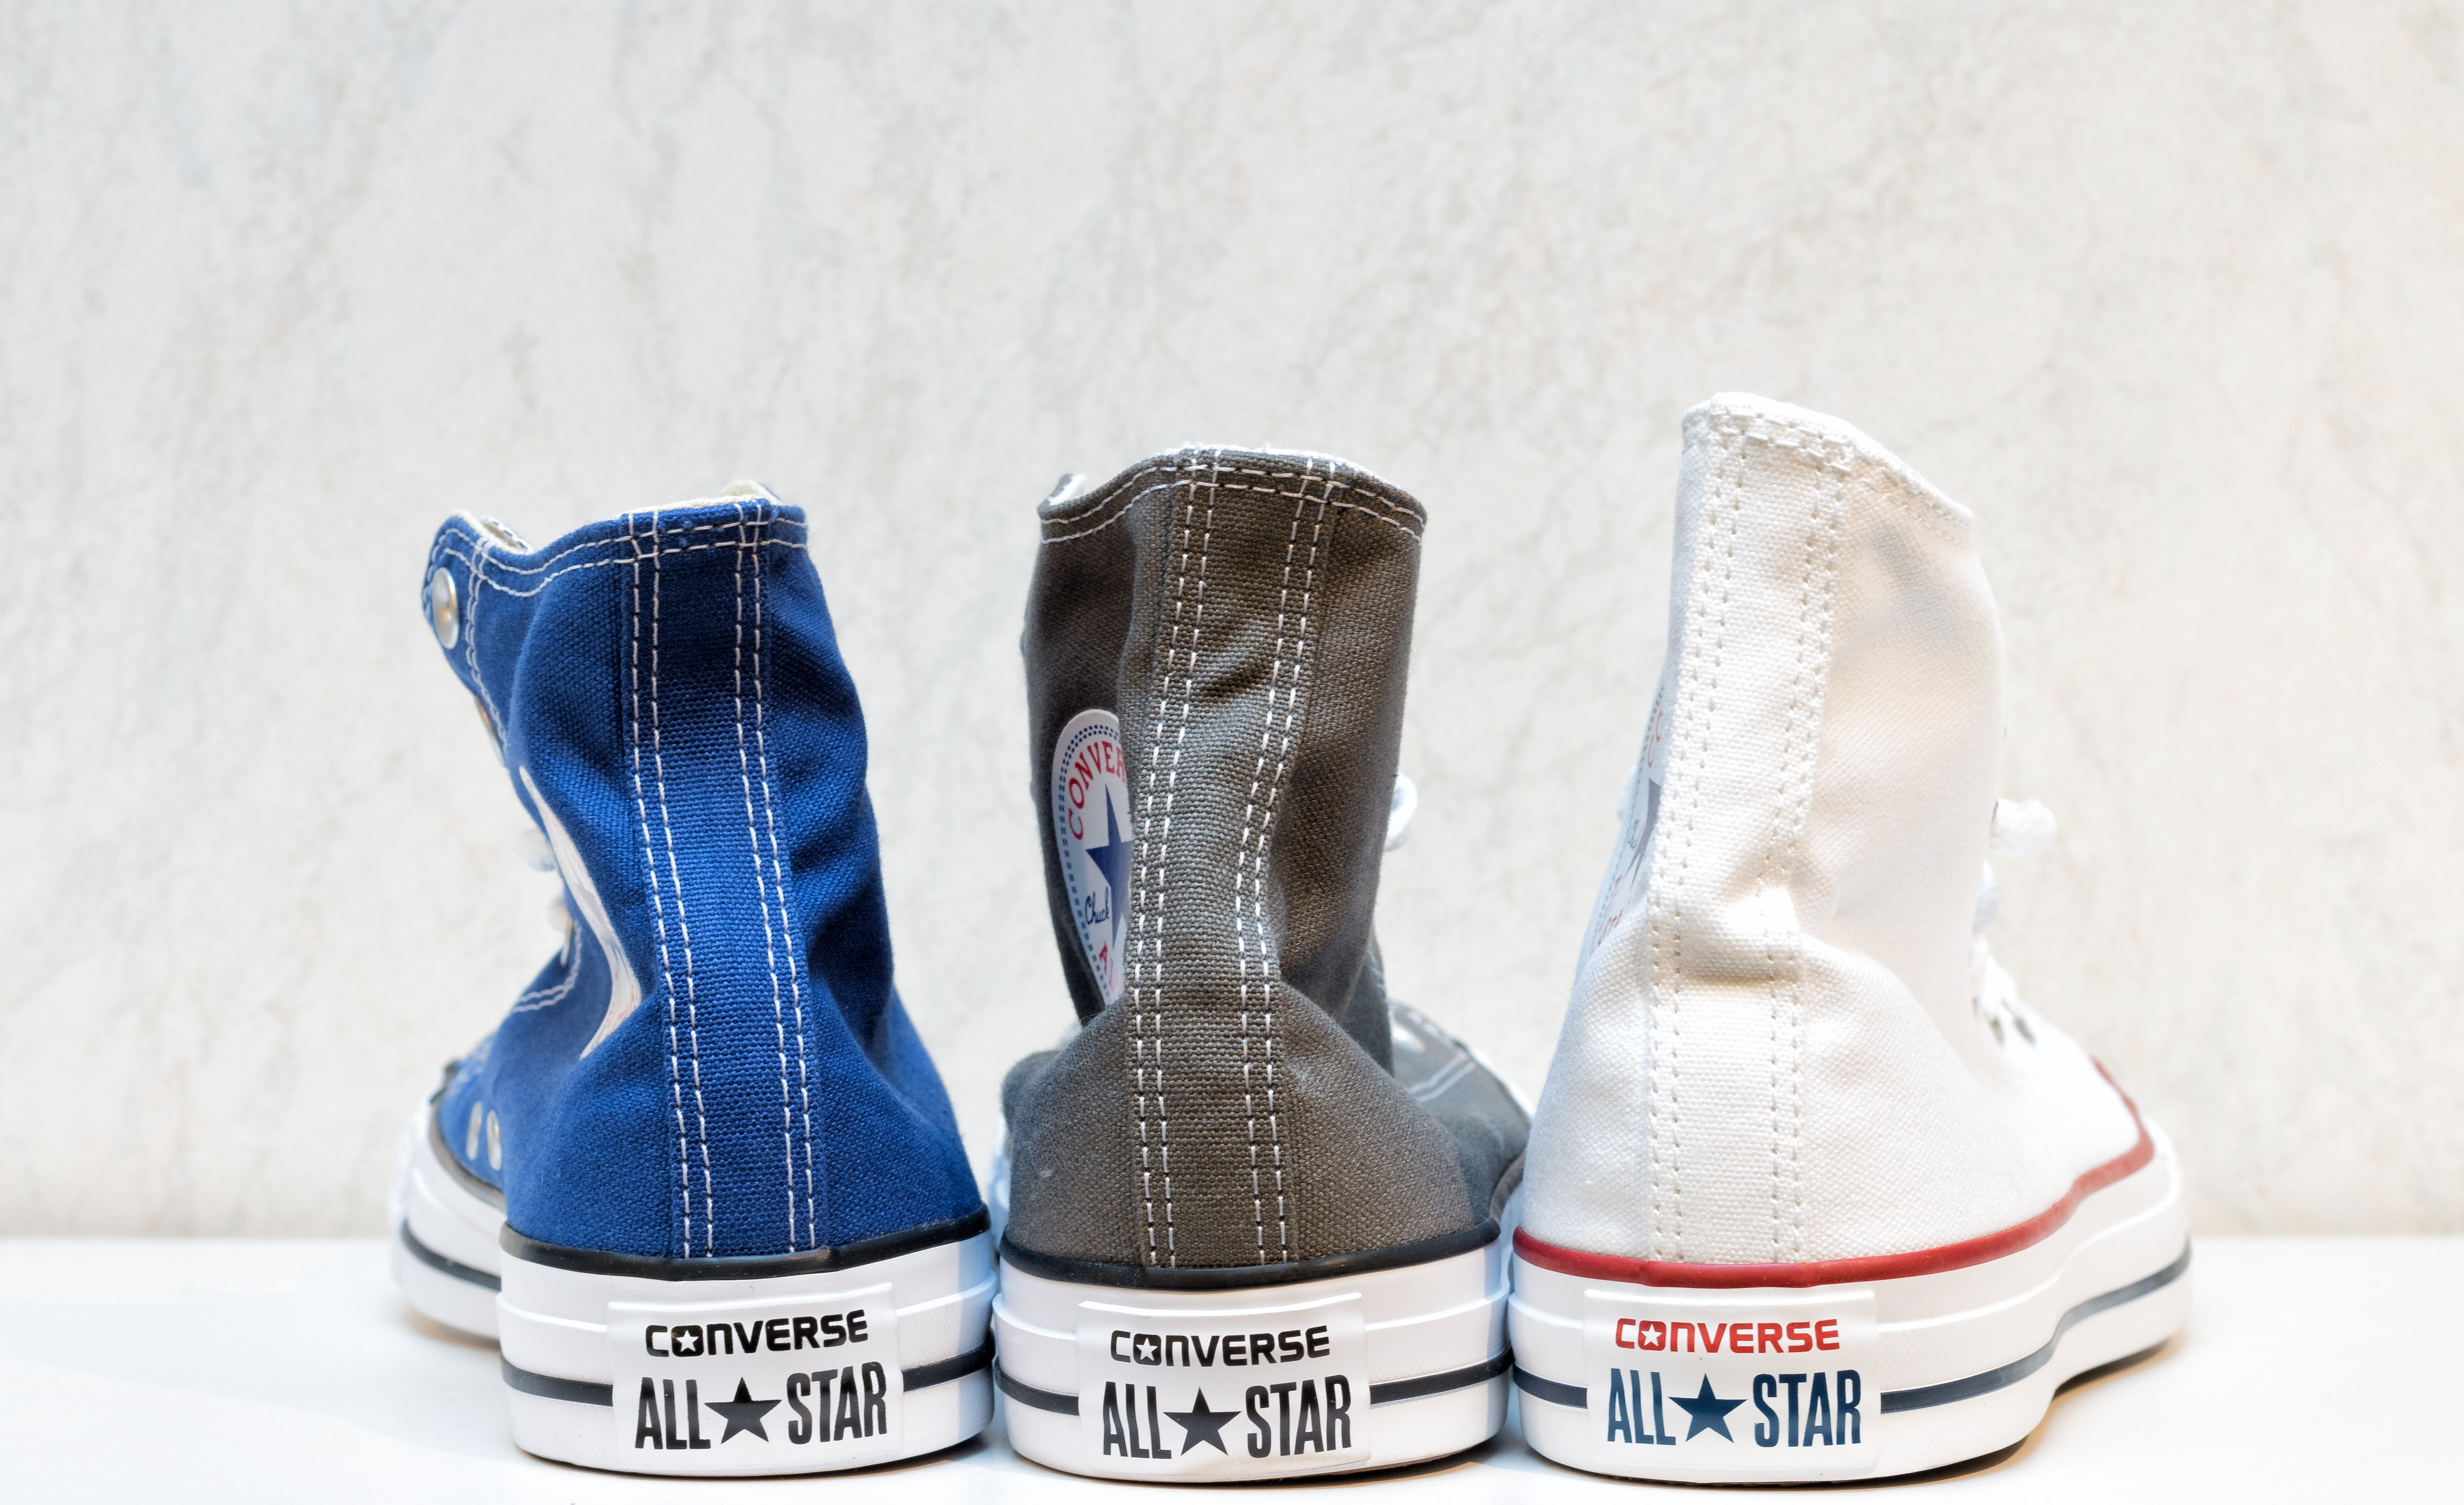 Unpaired White, Blue, and Brown Converse All-star High-top Sneakers